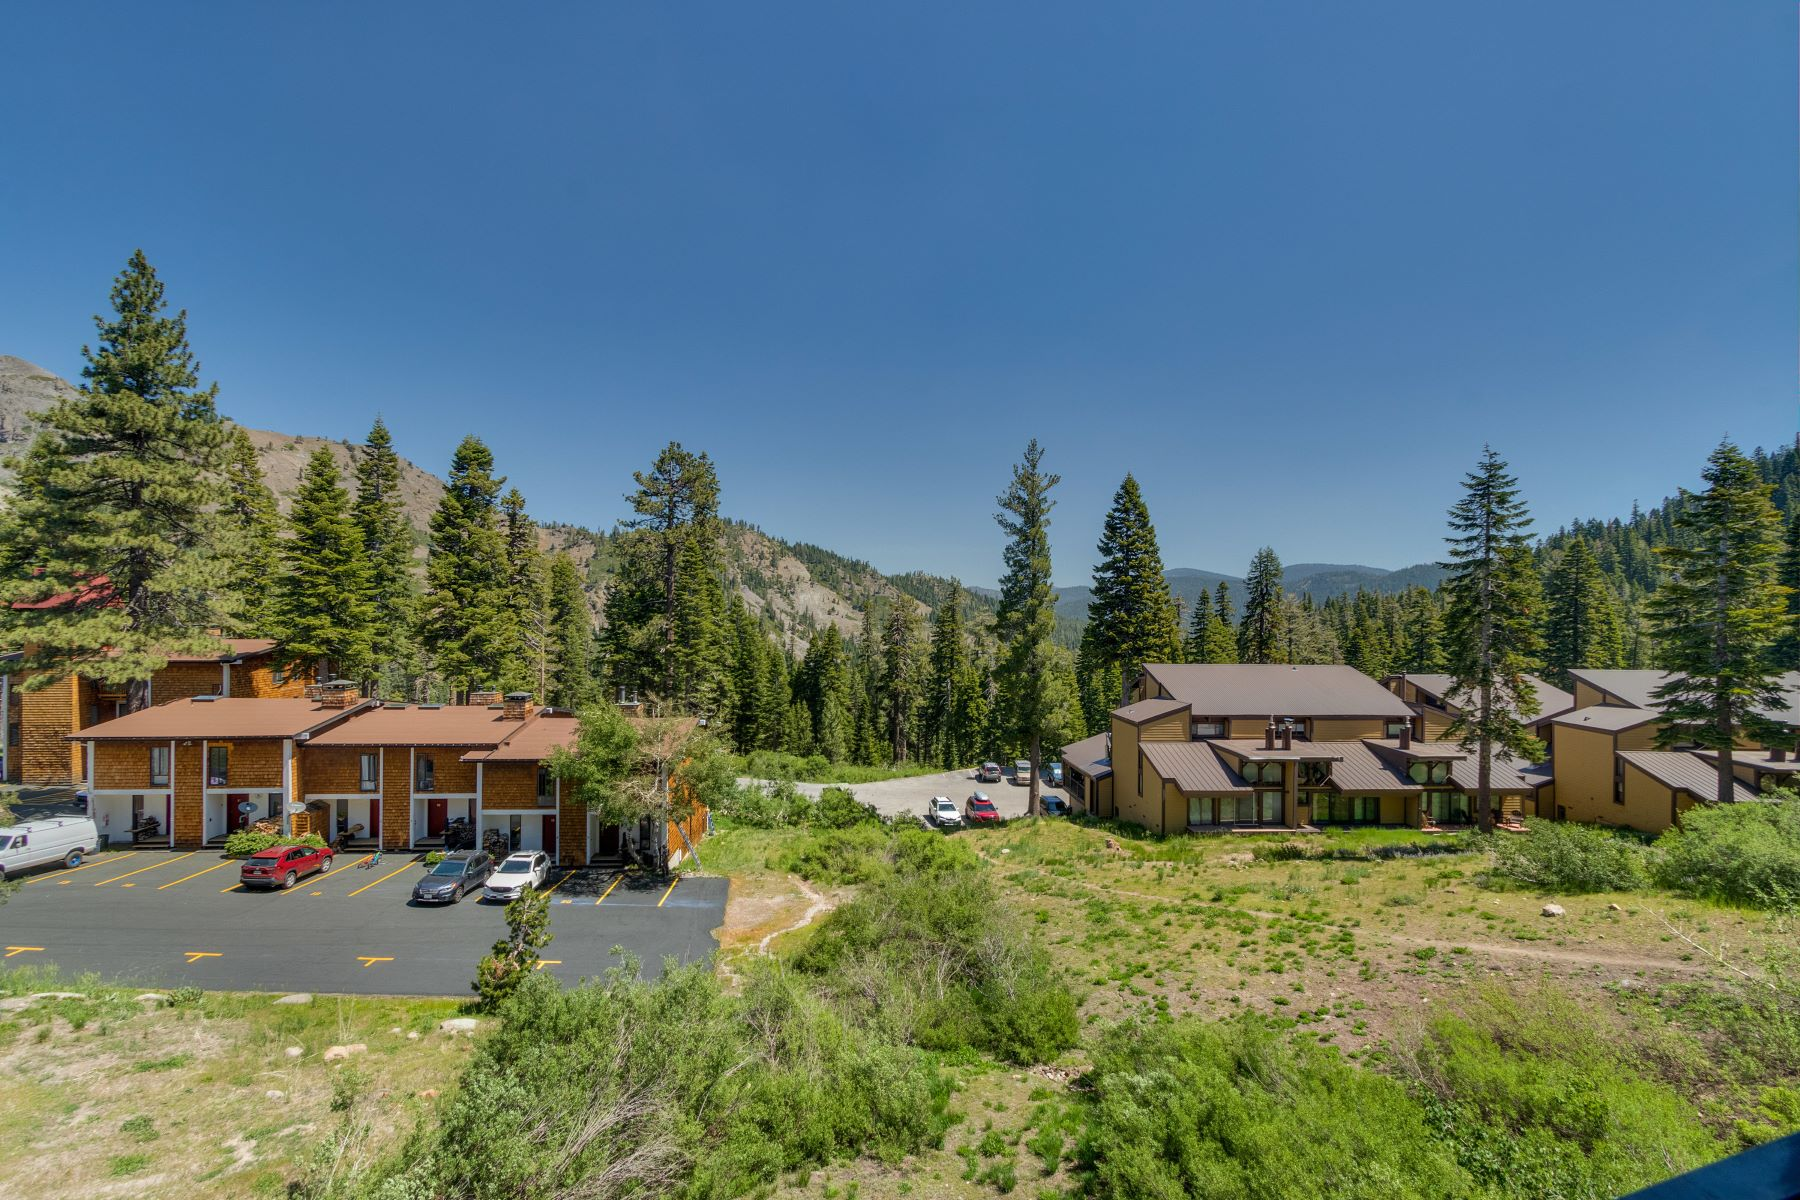 Additional photo for property listing at Alpine Meadows Mountain Condo 2201 Scotts Peak Place #28 Alpine Meadows, California 96146 United States